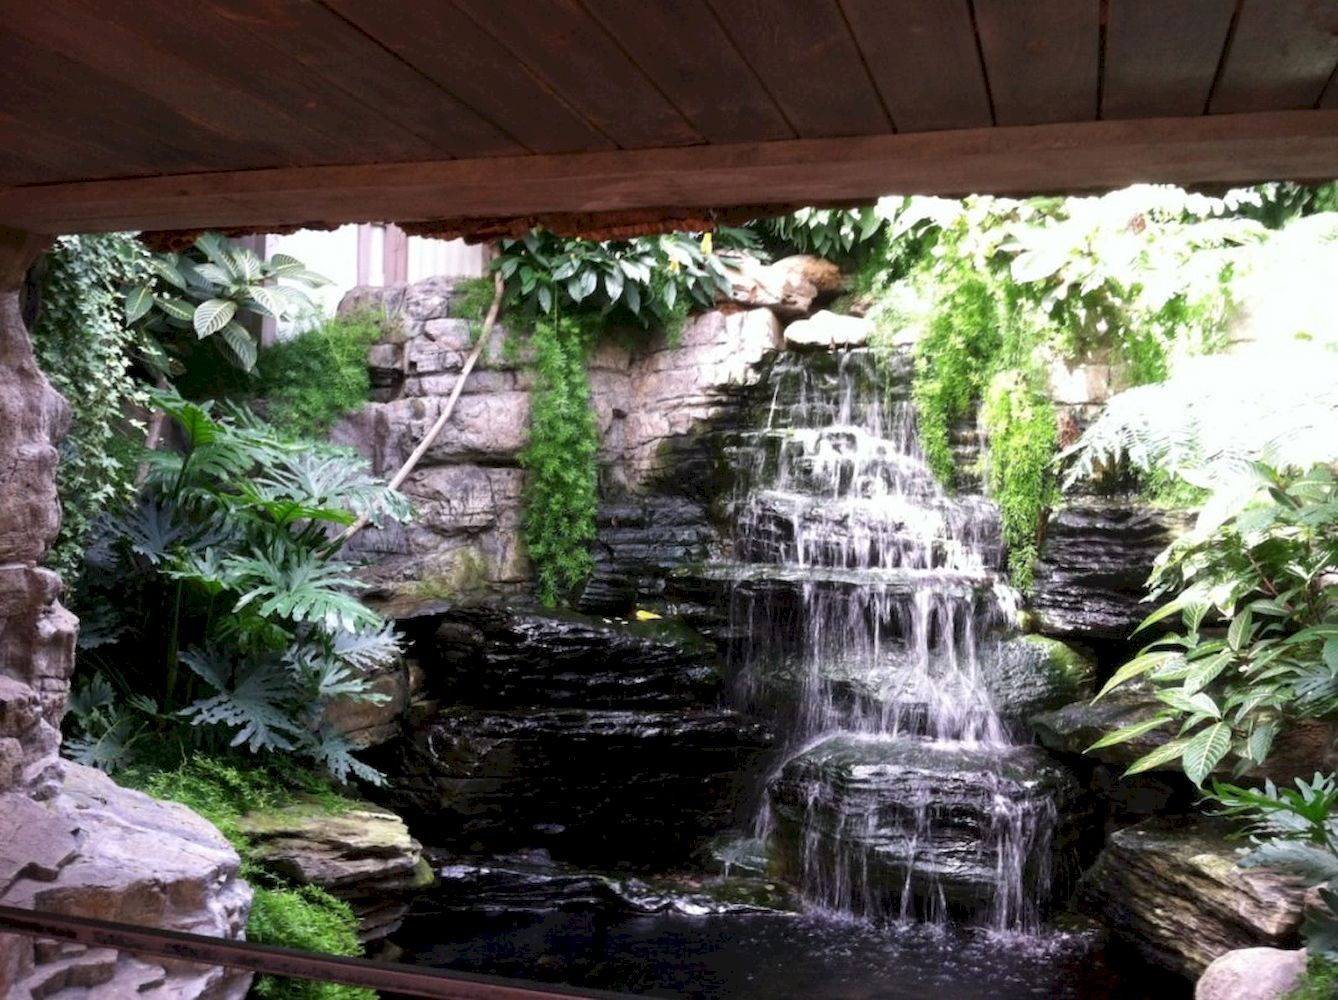 Beautify Your Garden With A Wall Waterfall Outdoor Fountain Kits Indoor Water Fountains Indoor Waterfall Indoor Pond